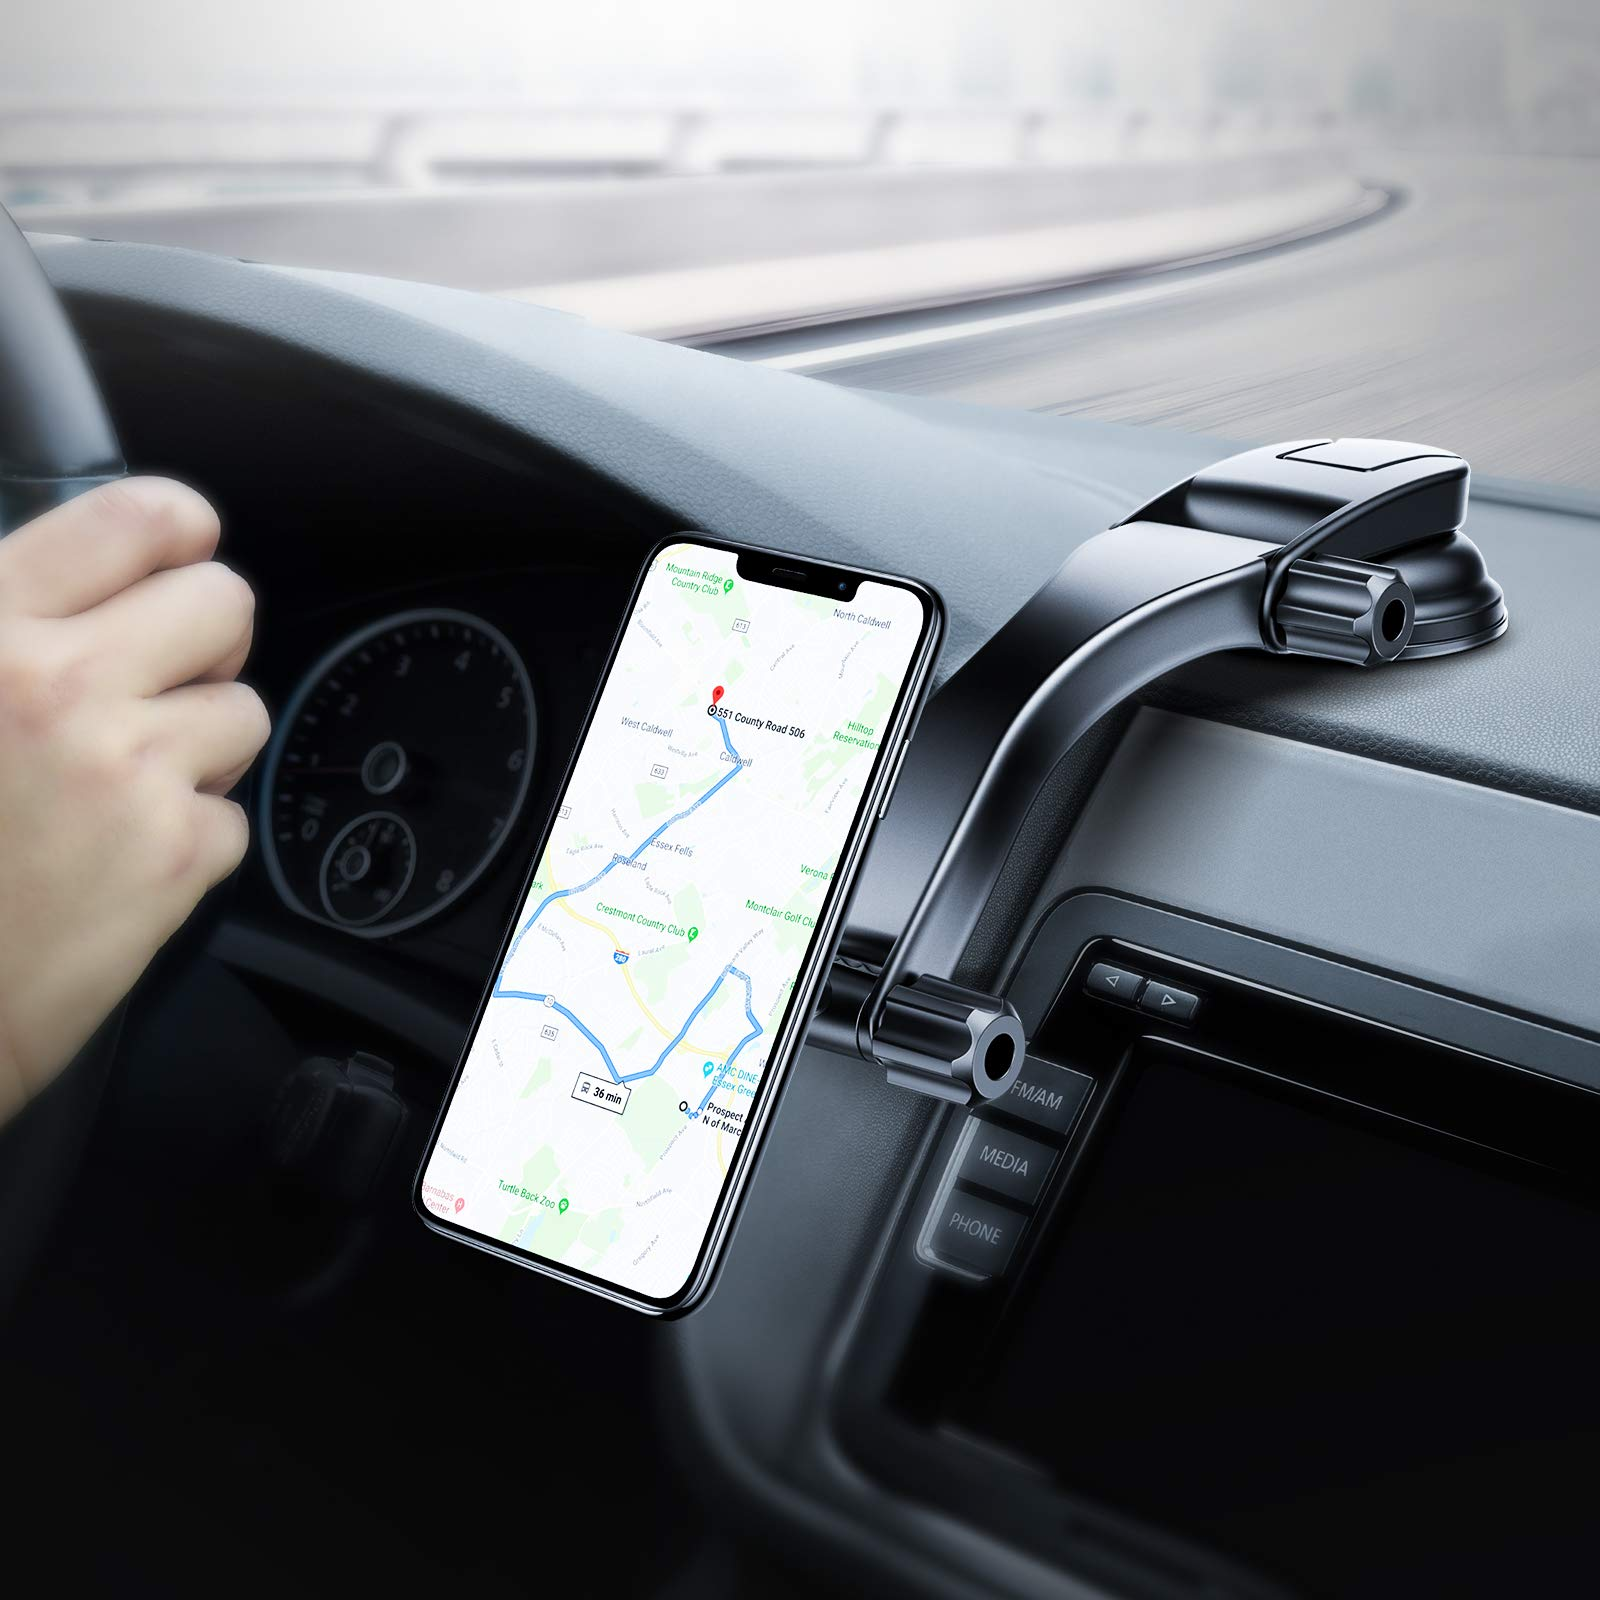 TORRAS Magnetic Car Mount, Adjustable Long Arm Car Phone Holder, Dashboard Mounts Smartphone Holder Stand Compatible with iPhone 11 Pro Max/X/XR/Xs Max/8/7 Plus, Galaxy Note 10/S10 Plus/S9 Google